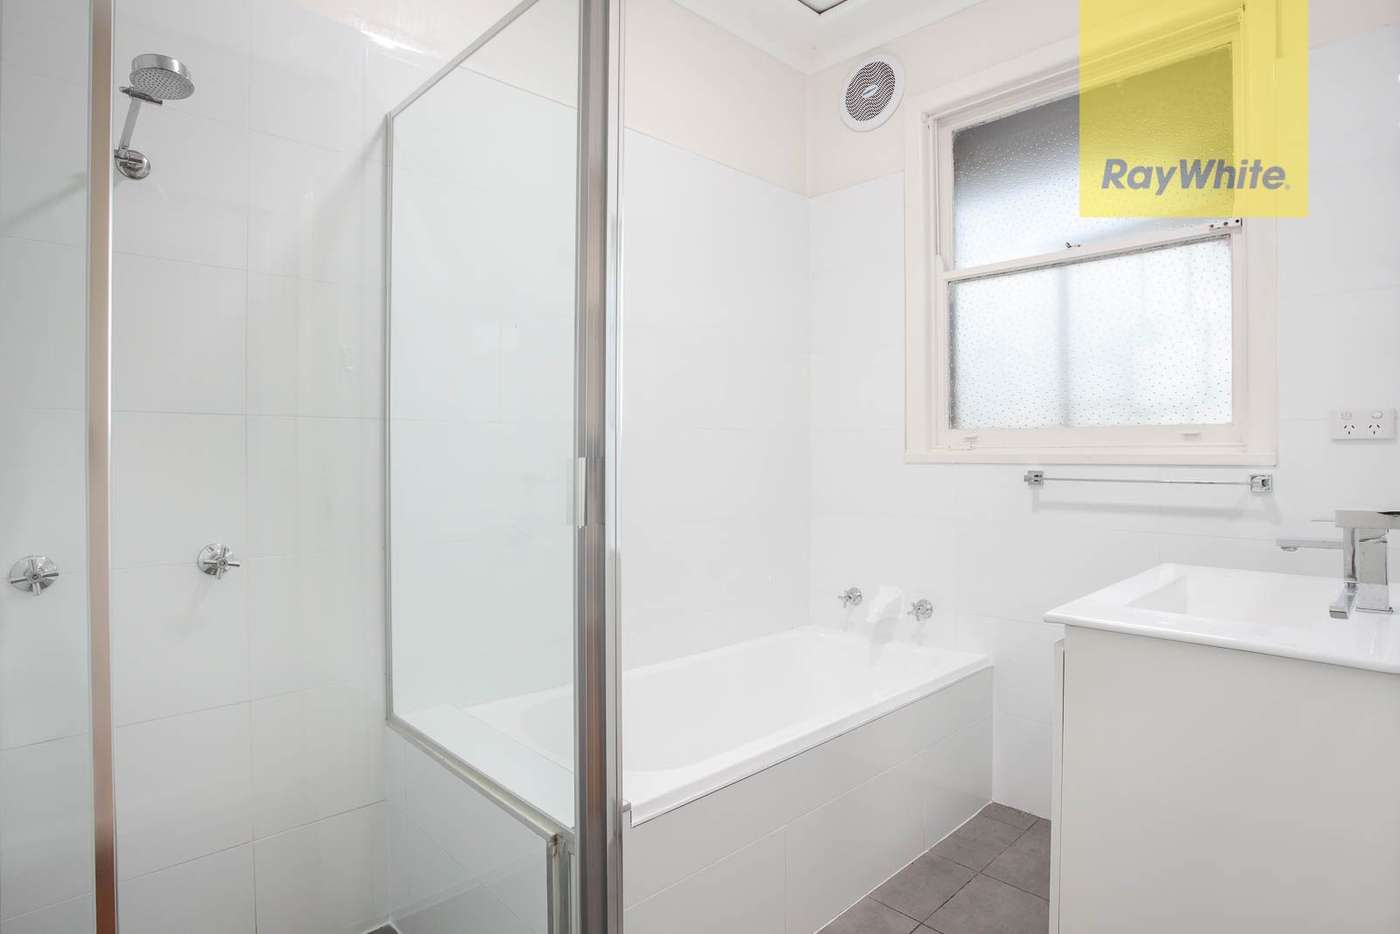 Fifth view of Homely house listing, 12 Warra Street, Wentworthville NSW 2145